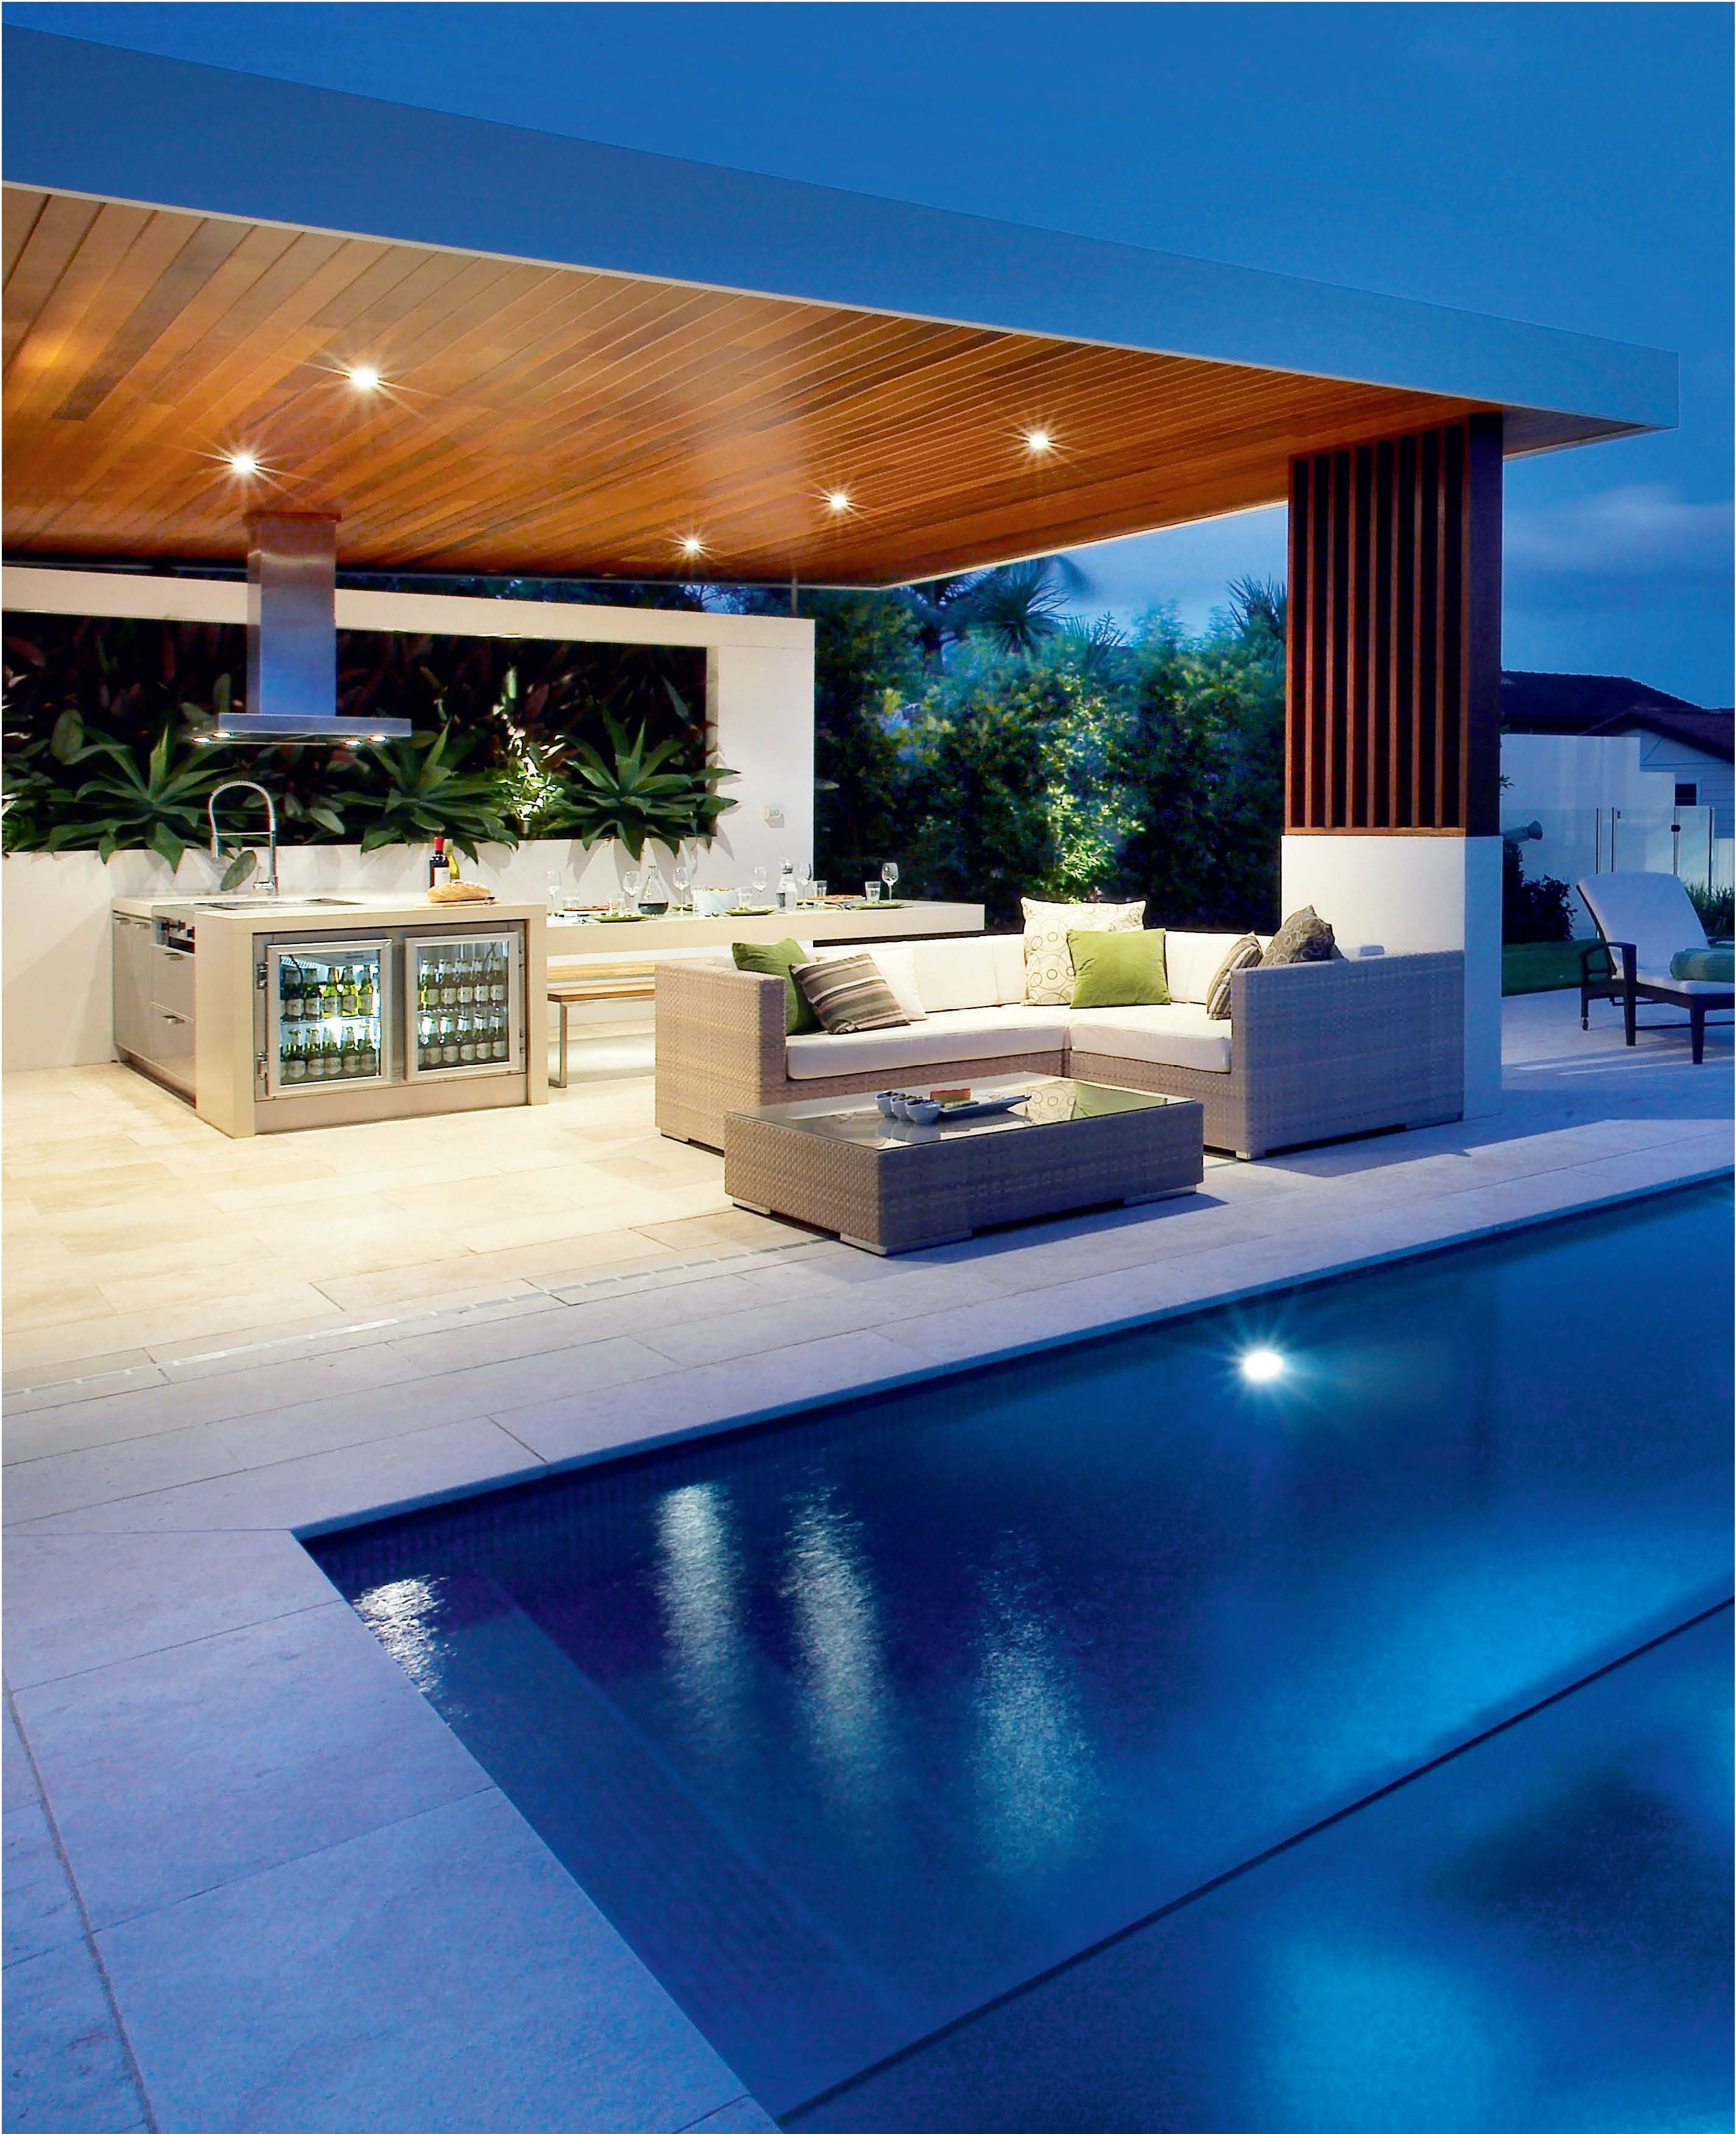 Outdoor Design Ideas 25 best modern outdoor design ideas 25 Modern Outdoor Design Ideas